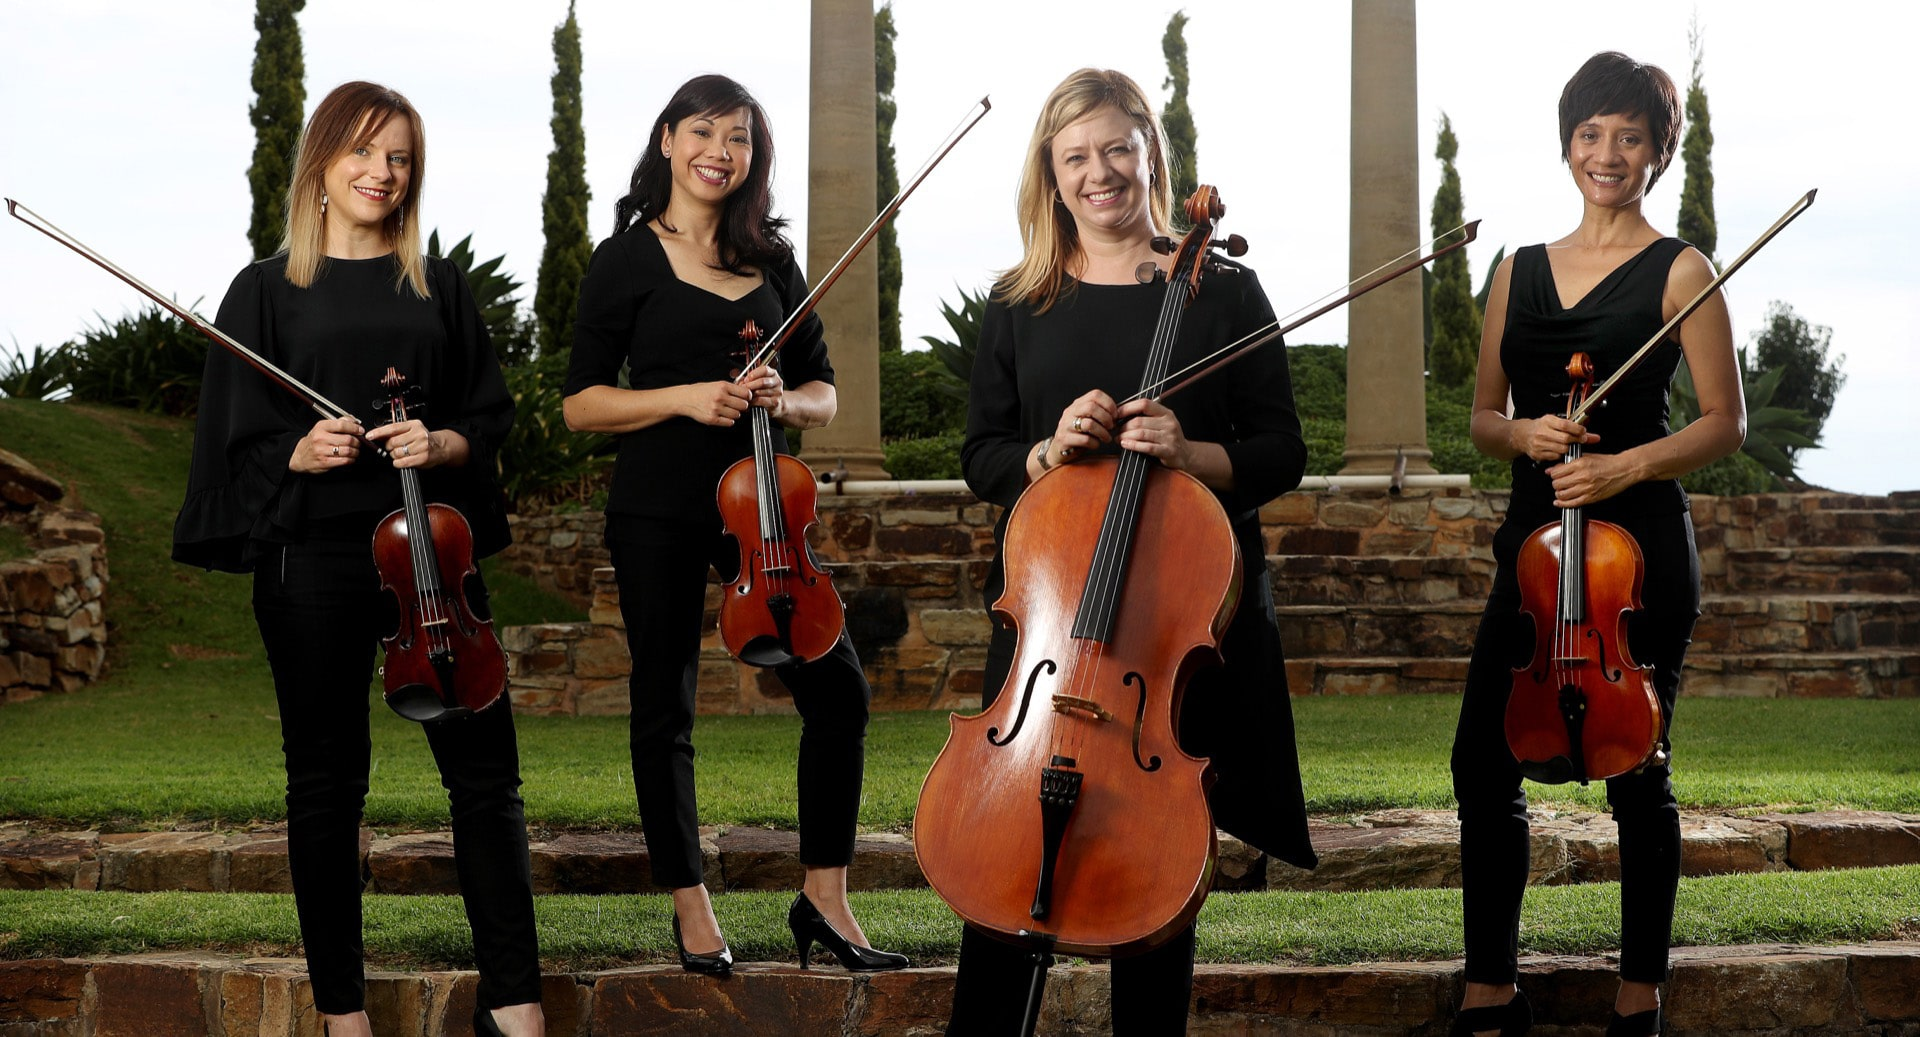 Amicus Strings string quartet music for weddings & events